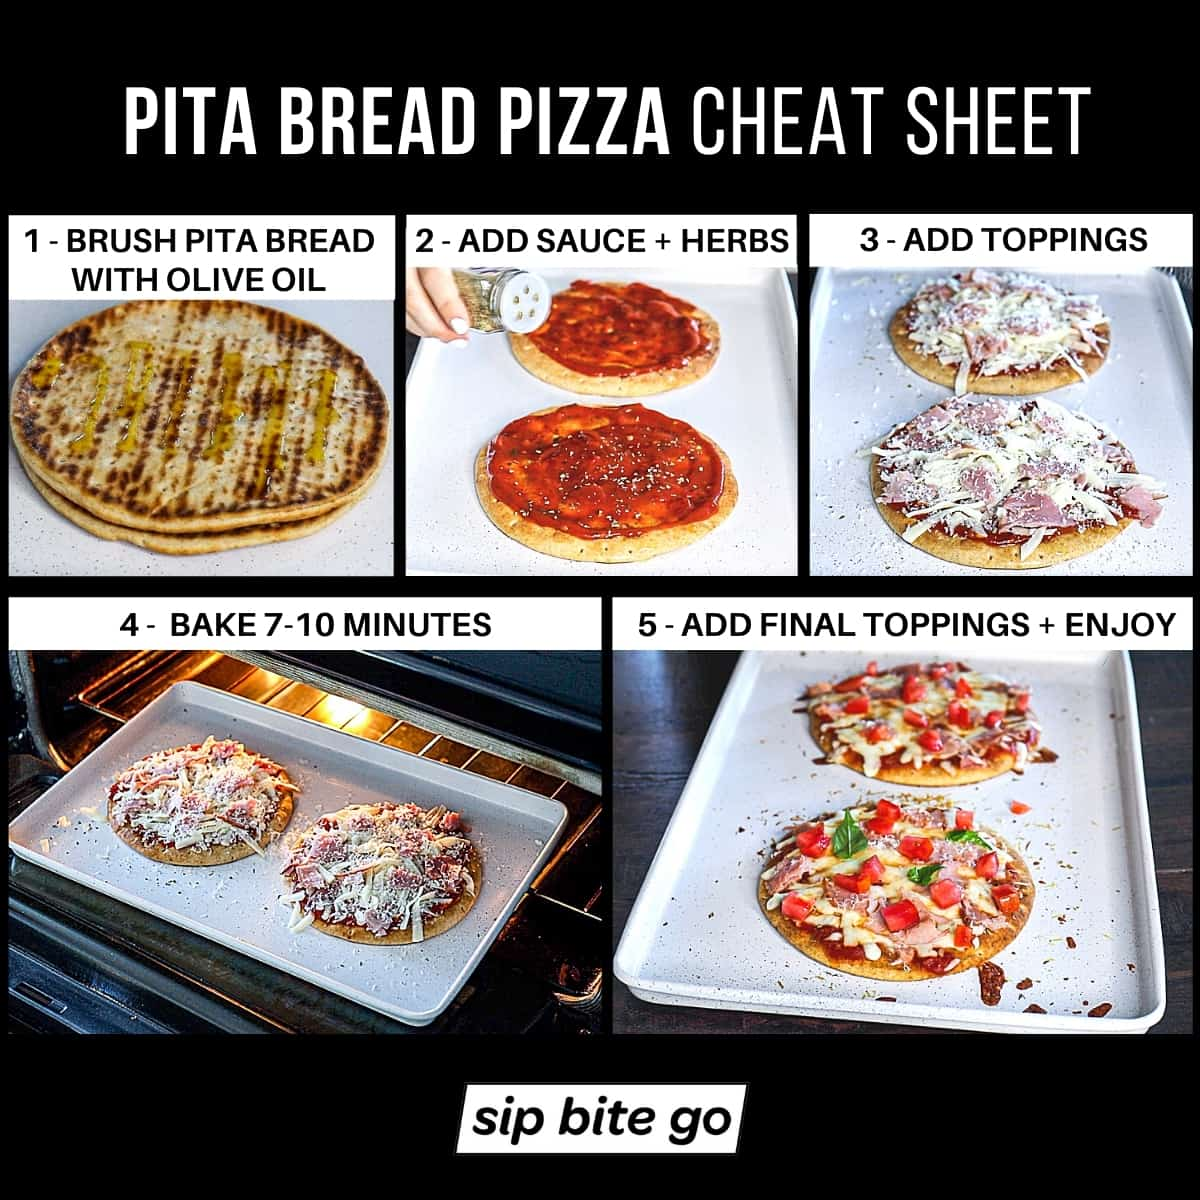 Infographic instructions demonstrating pita pizza recipe steps.